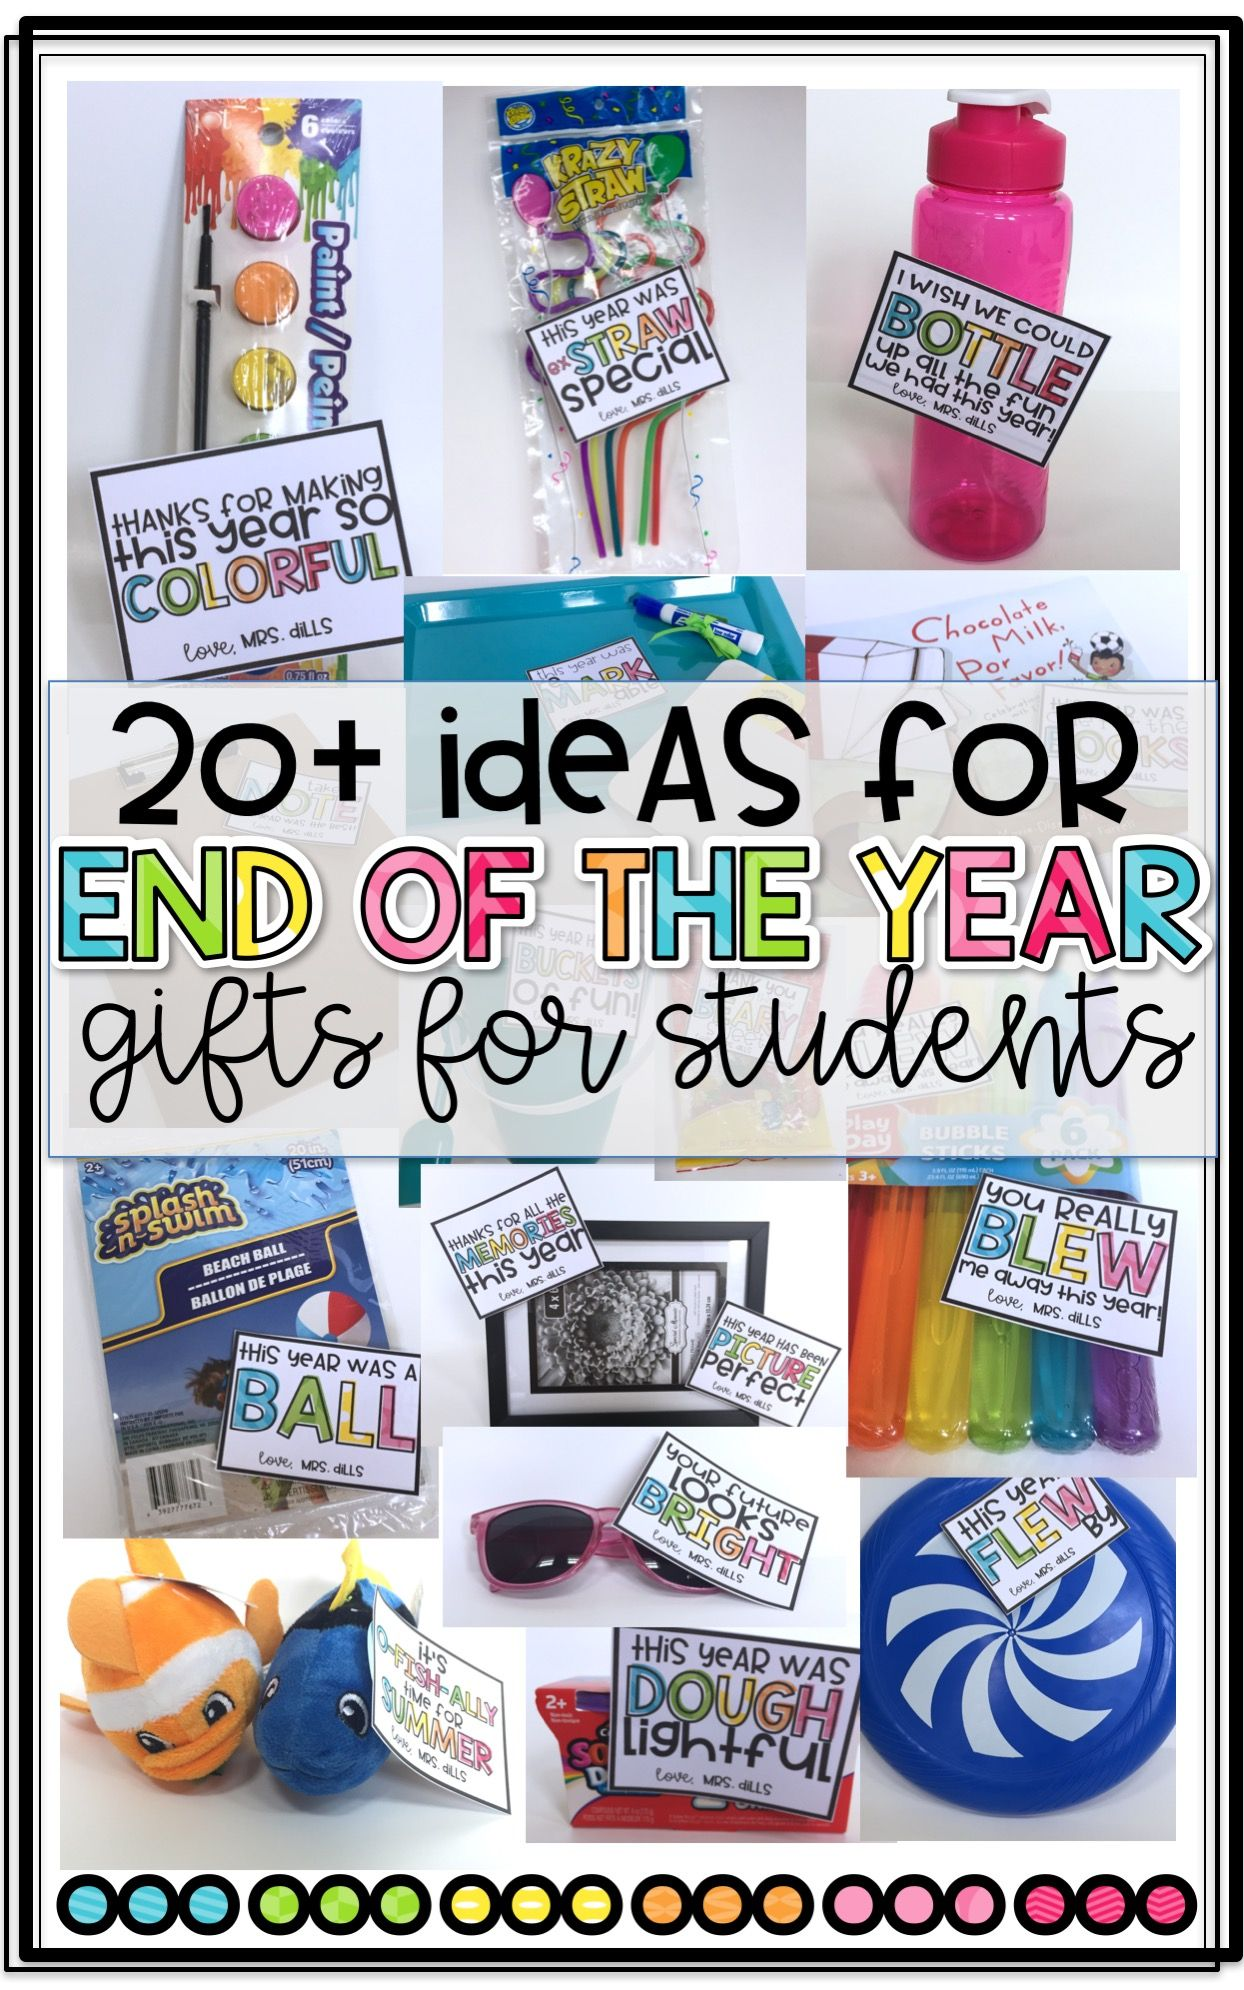 20 ideas for end of the year gifts for students from teachers easy and inexpensive ideas